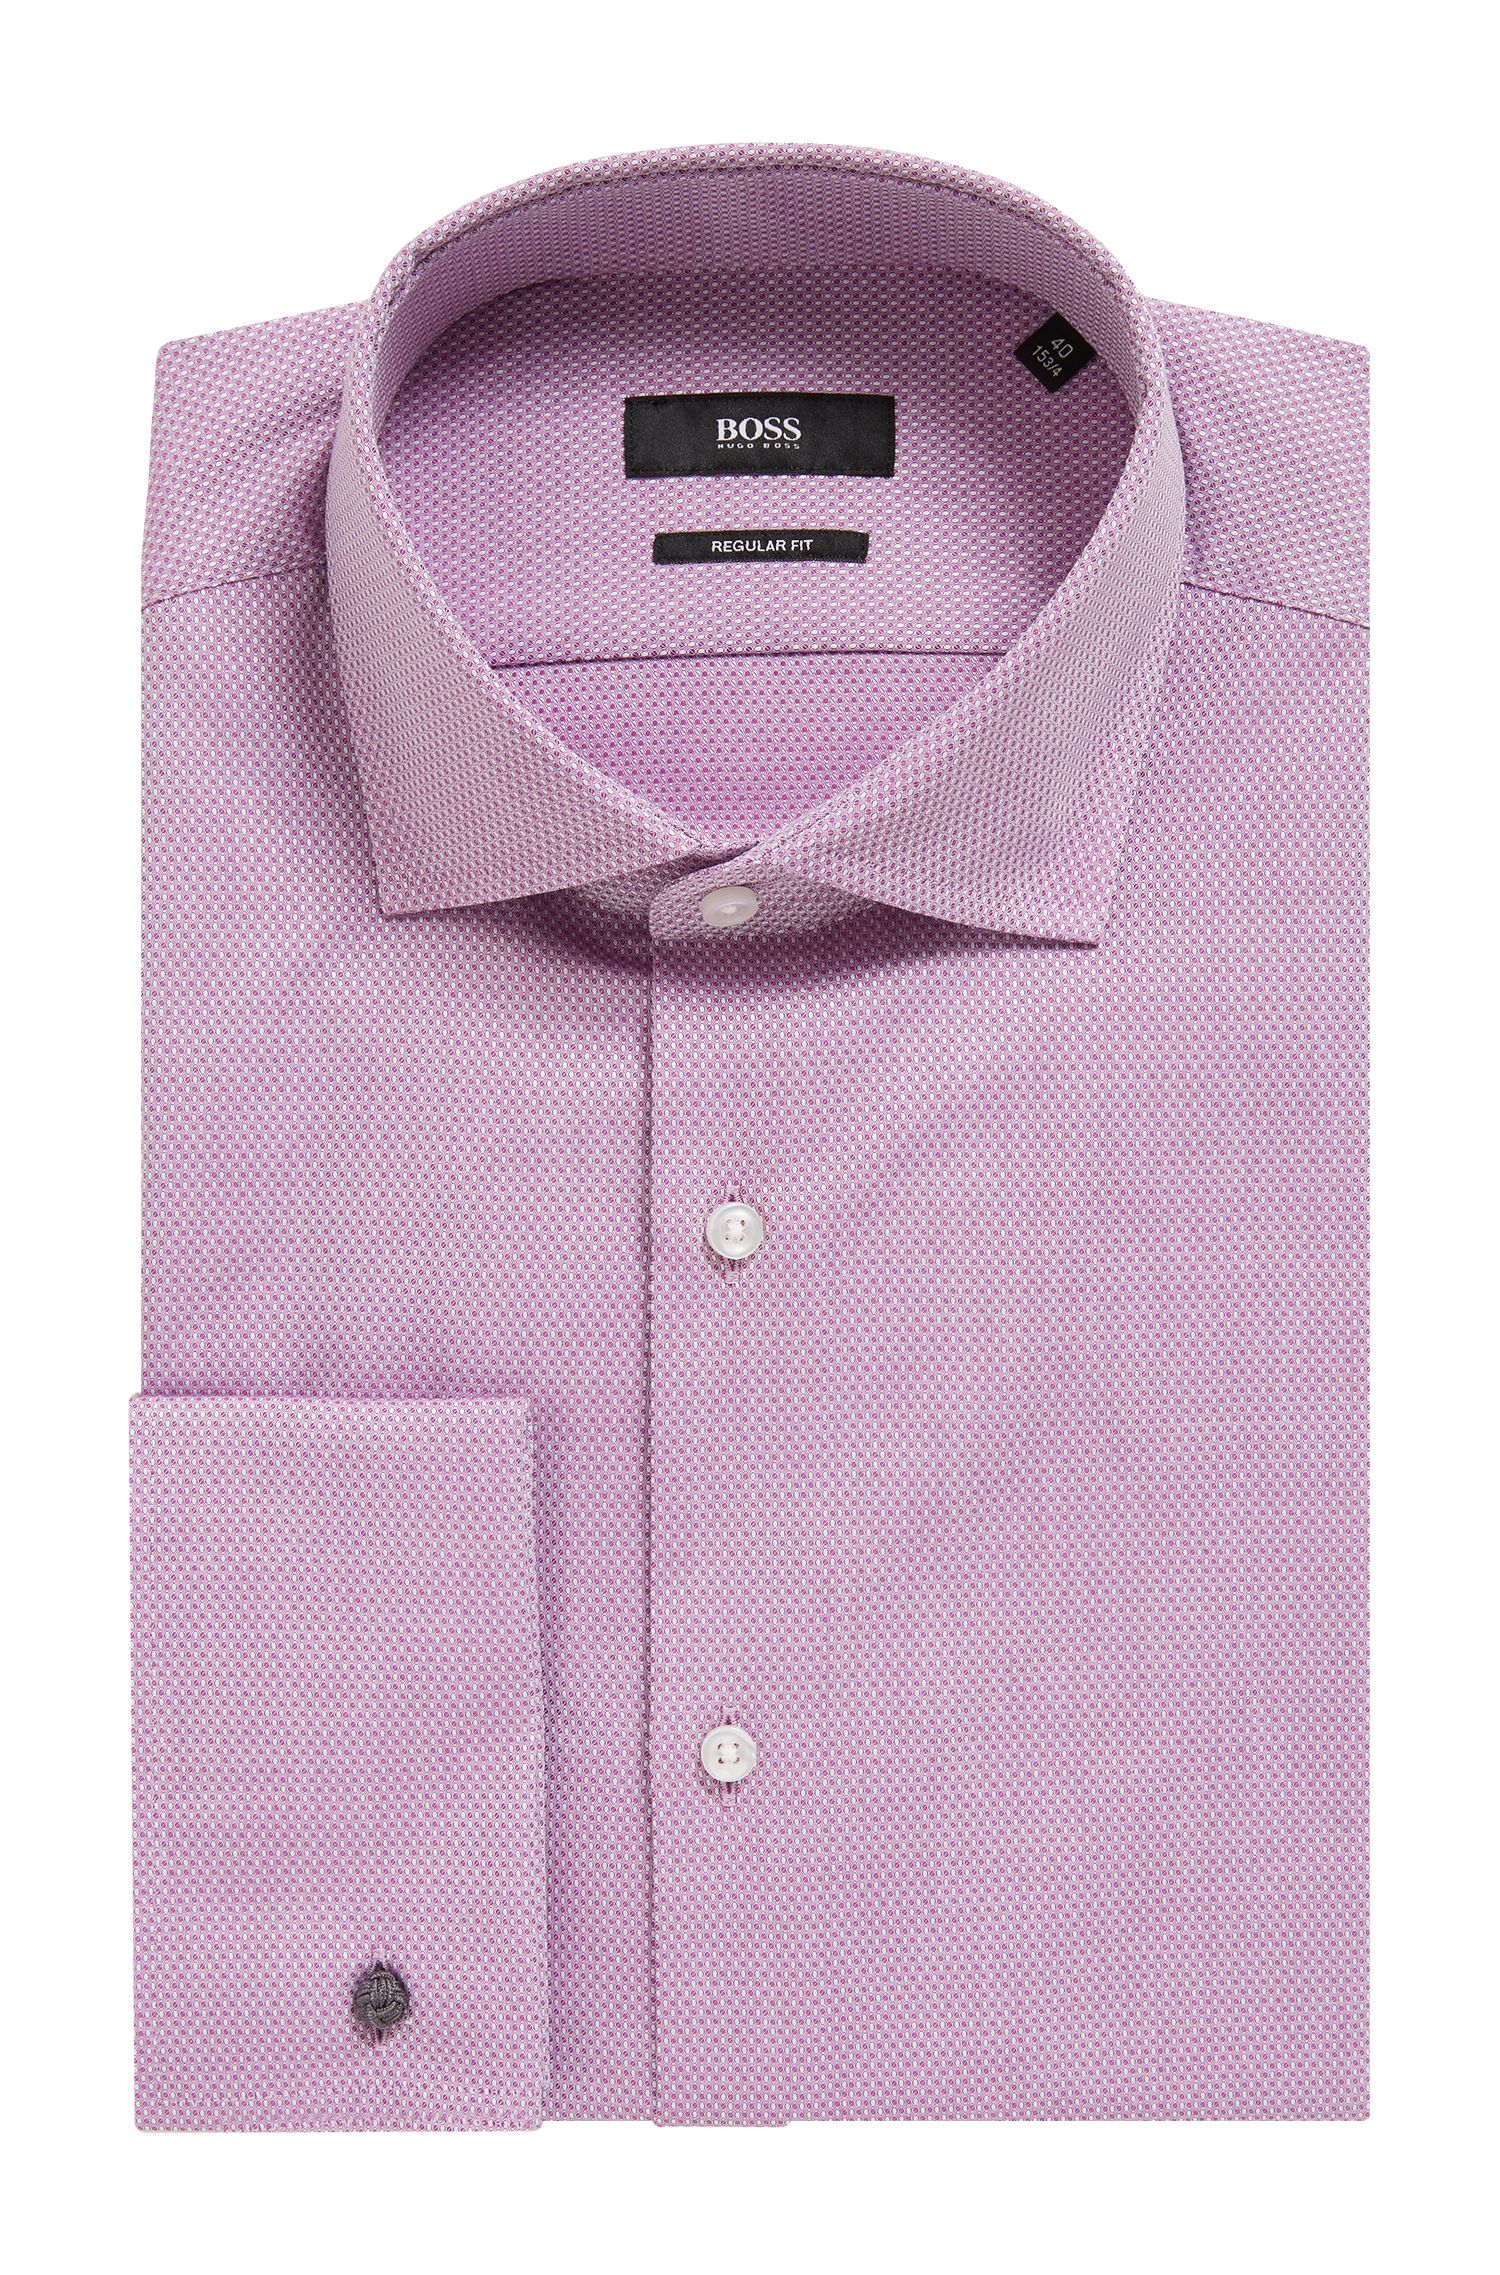 Regular-fit shirt in micro-patterned dobby cotton